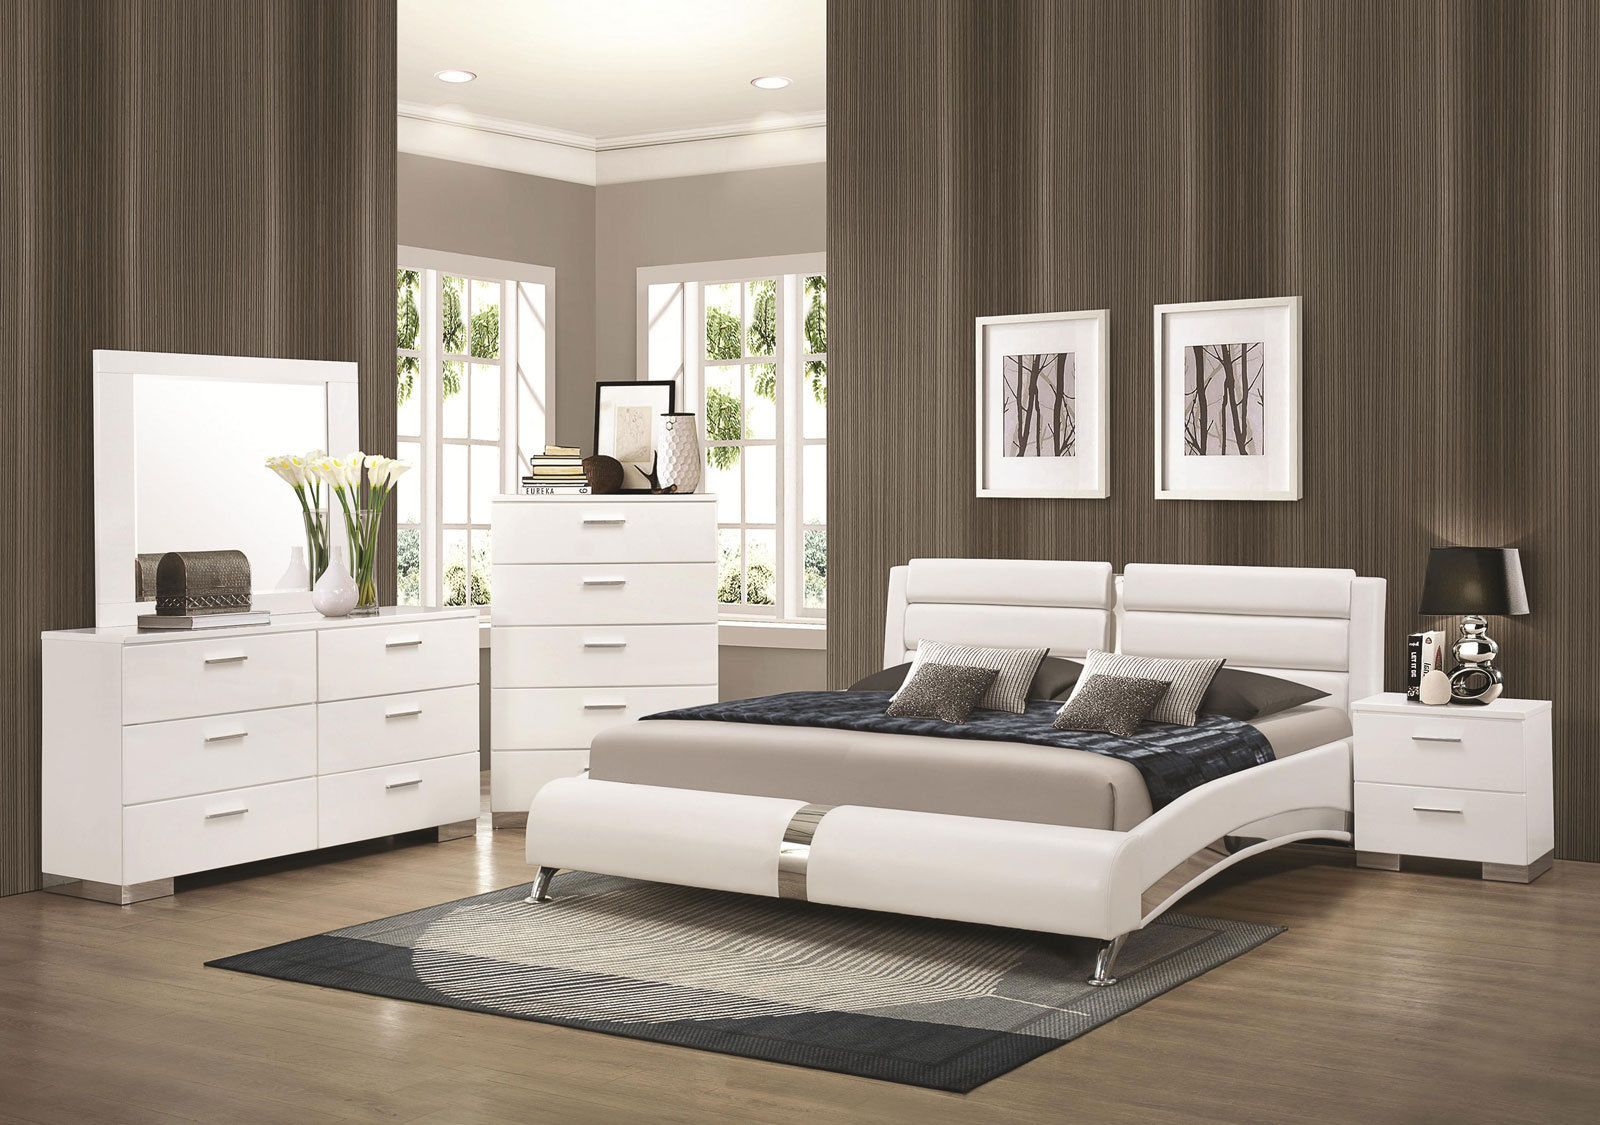 Bedroom Ideas Bedroom Furniture Stanton Ultra Modern 5pcs Glossy White King Size Platform Modern Bedroom Set Platform Bedroom Sets Modern Bedroom Furniture